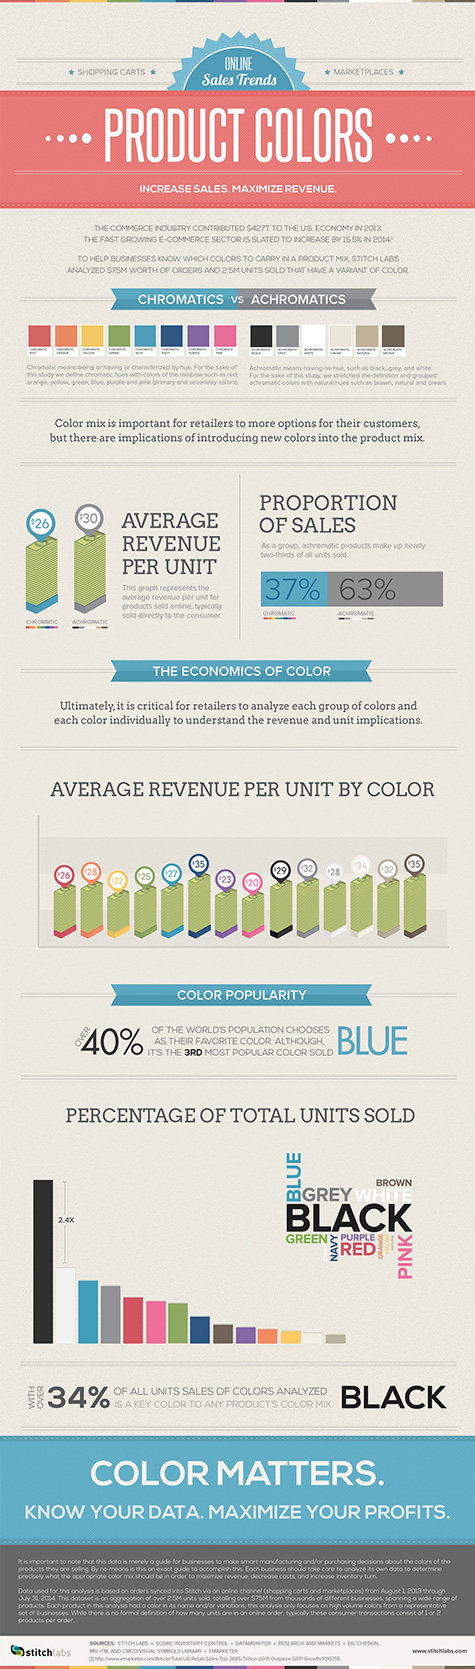 online sales trends color matters 475